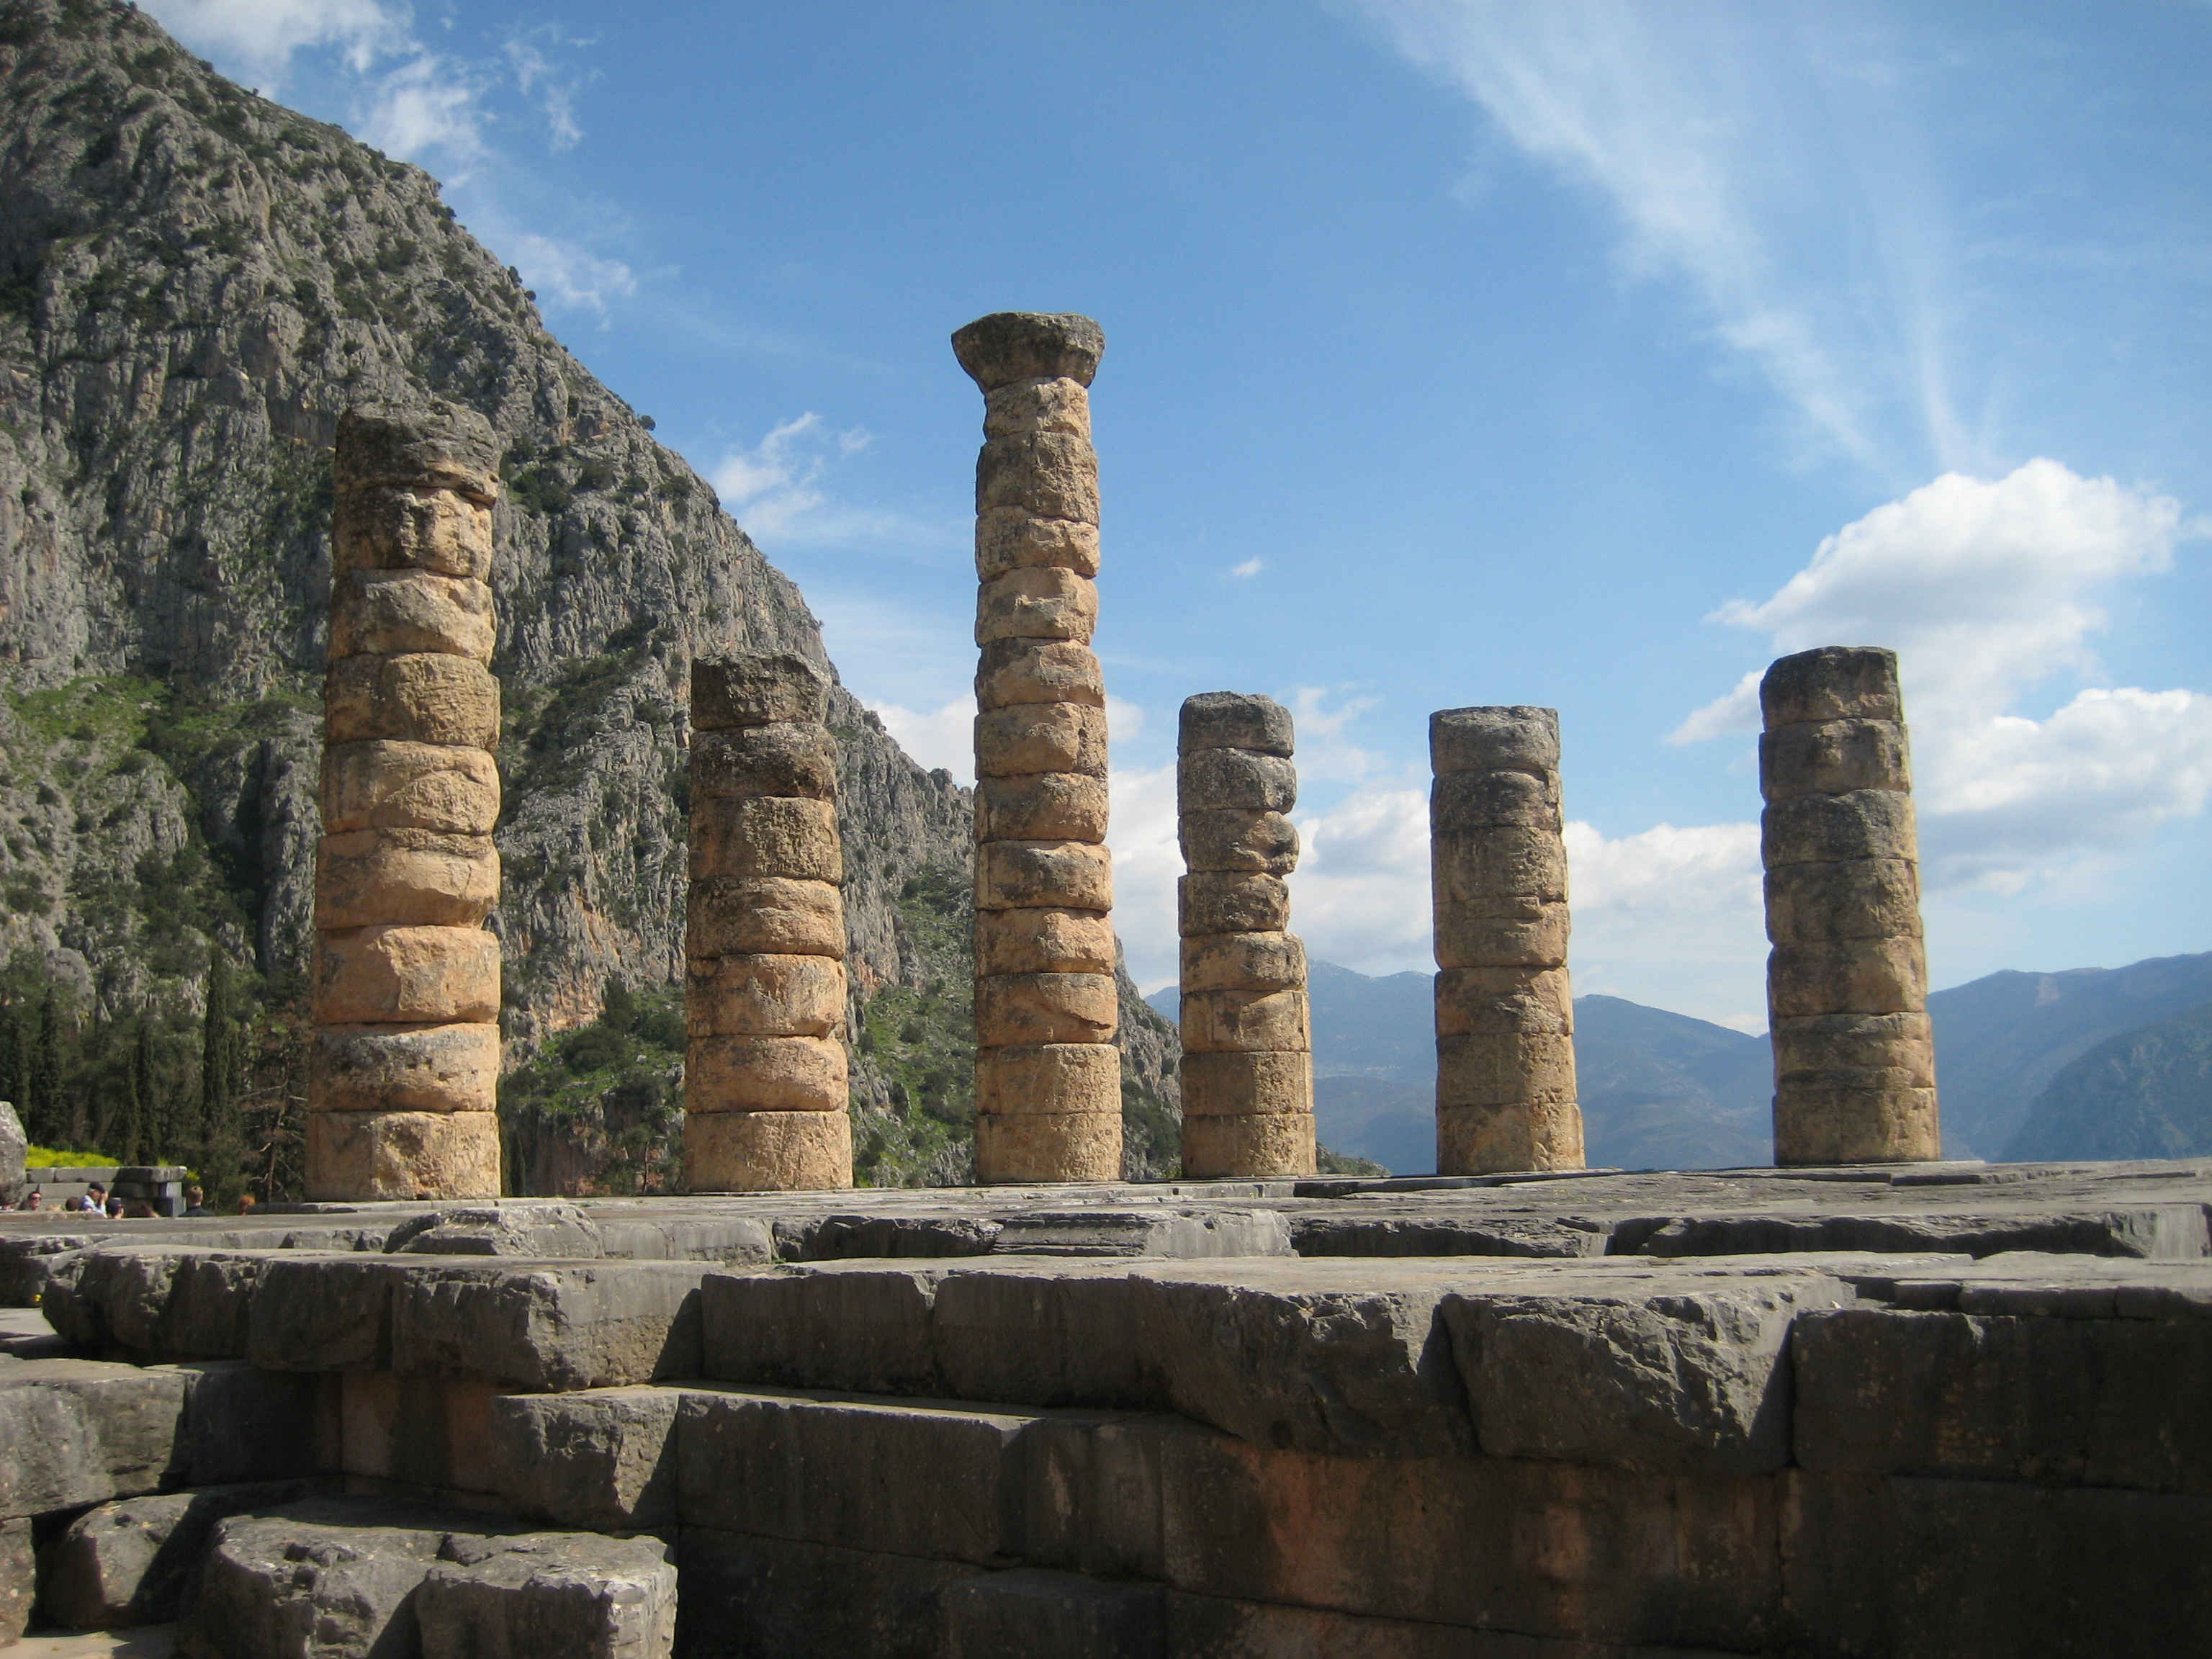 Columns_of_the_Temple_of_Apollo_at_Delphi,_Greece